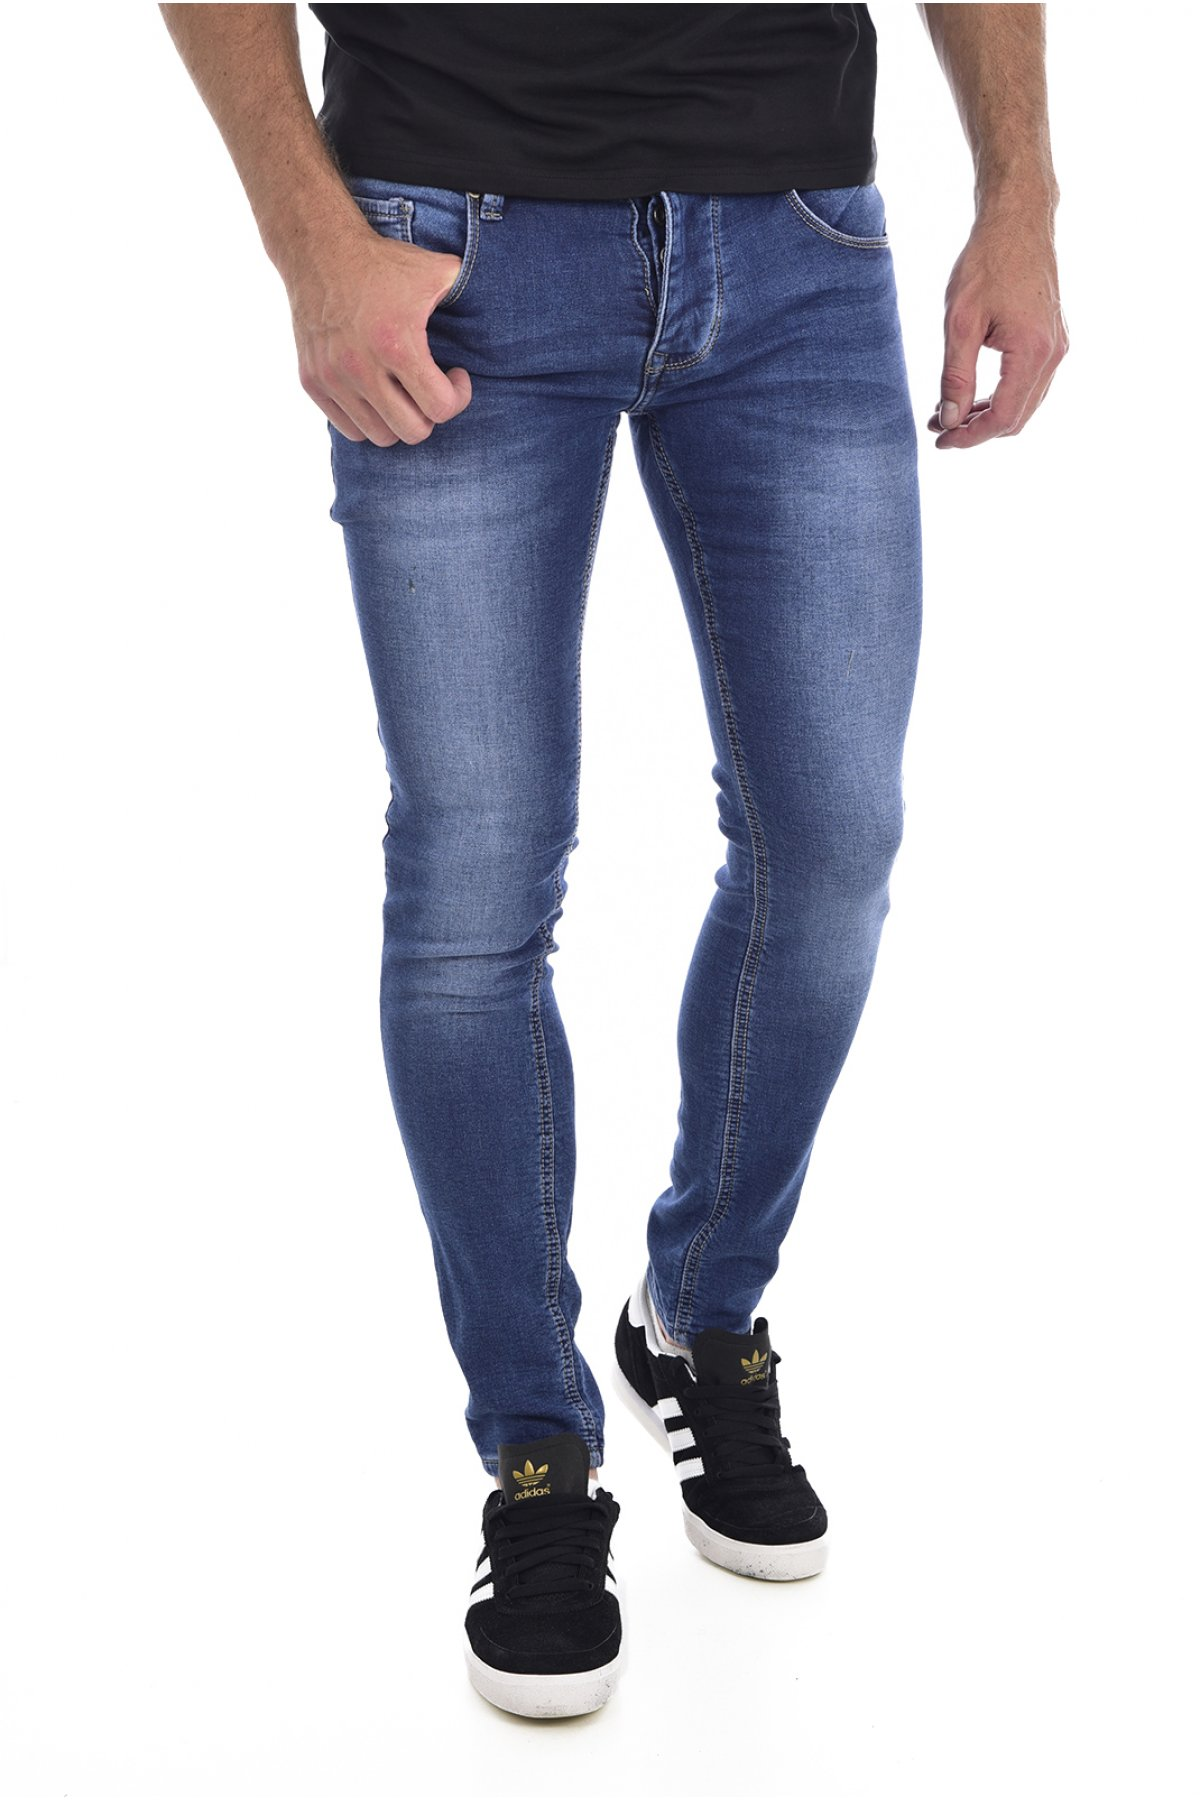 Jean Slim Stretch L01053 - Leo Gutti